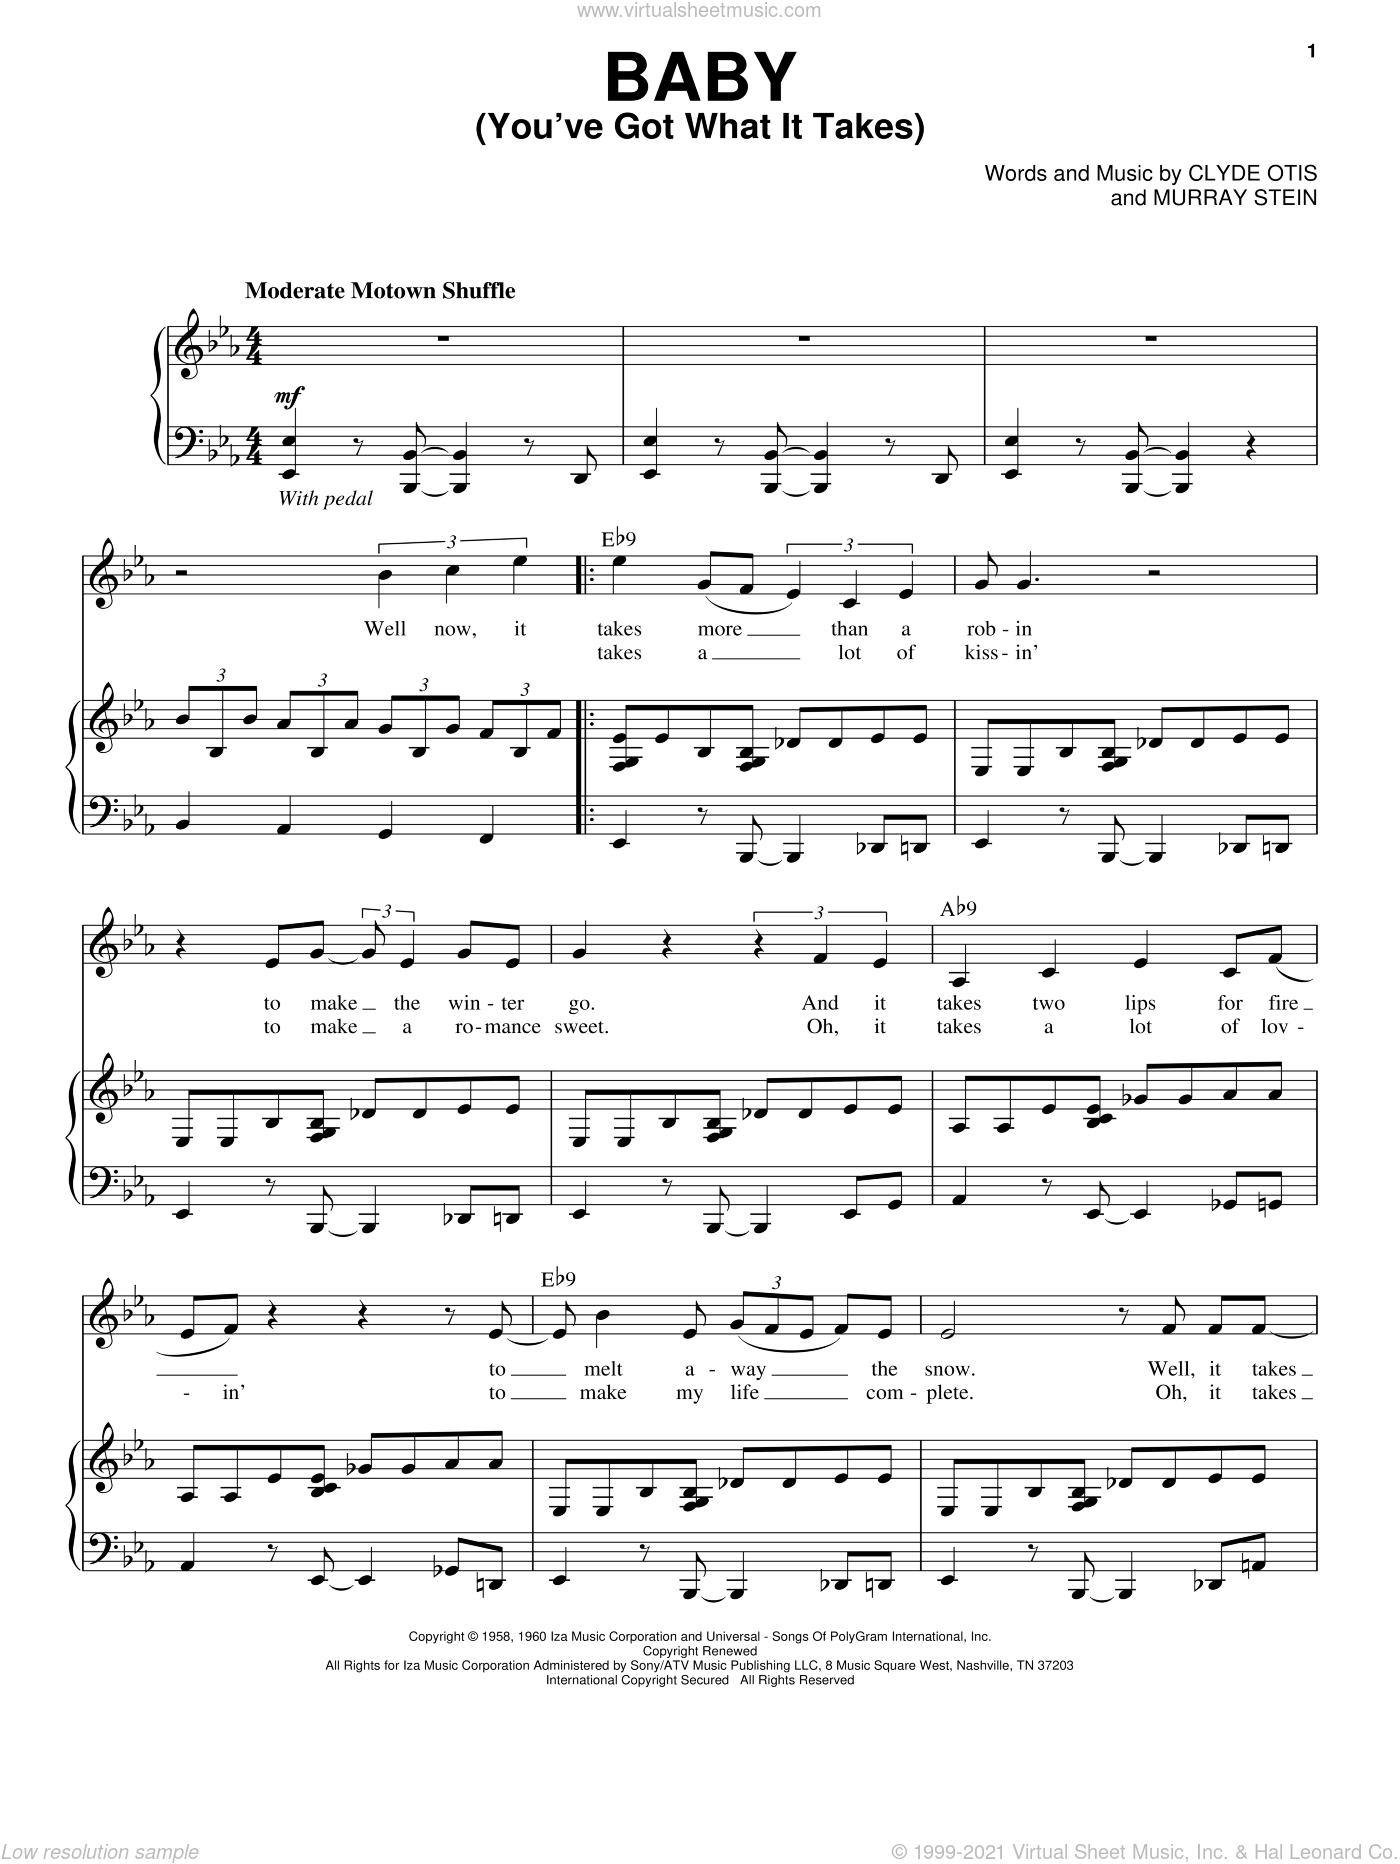 Baby (You've Got What It Takes) sheet music for voice and piano by Michael Buble, Brenton Brown, Dinah Washington, Clyde Otis and Murray Stein, intermediate skill level